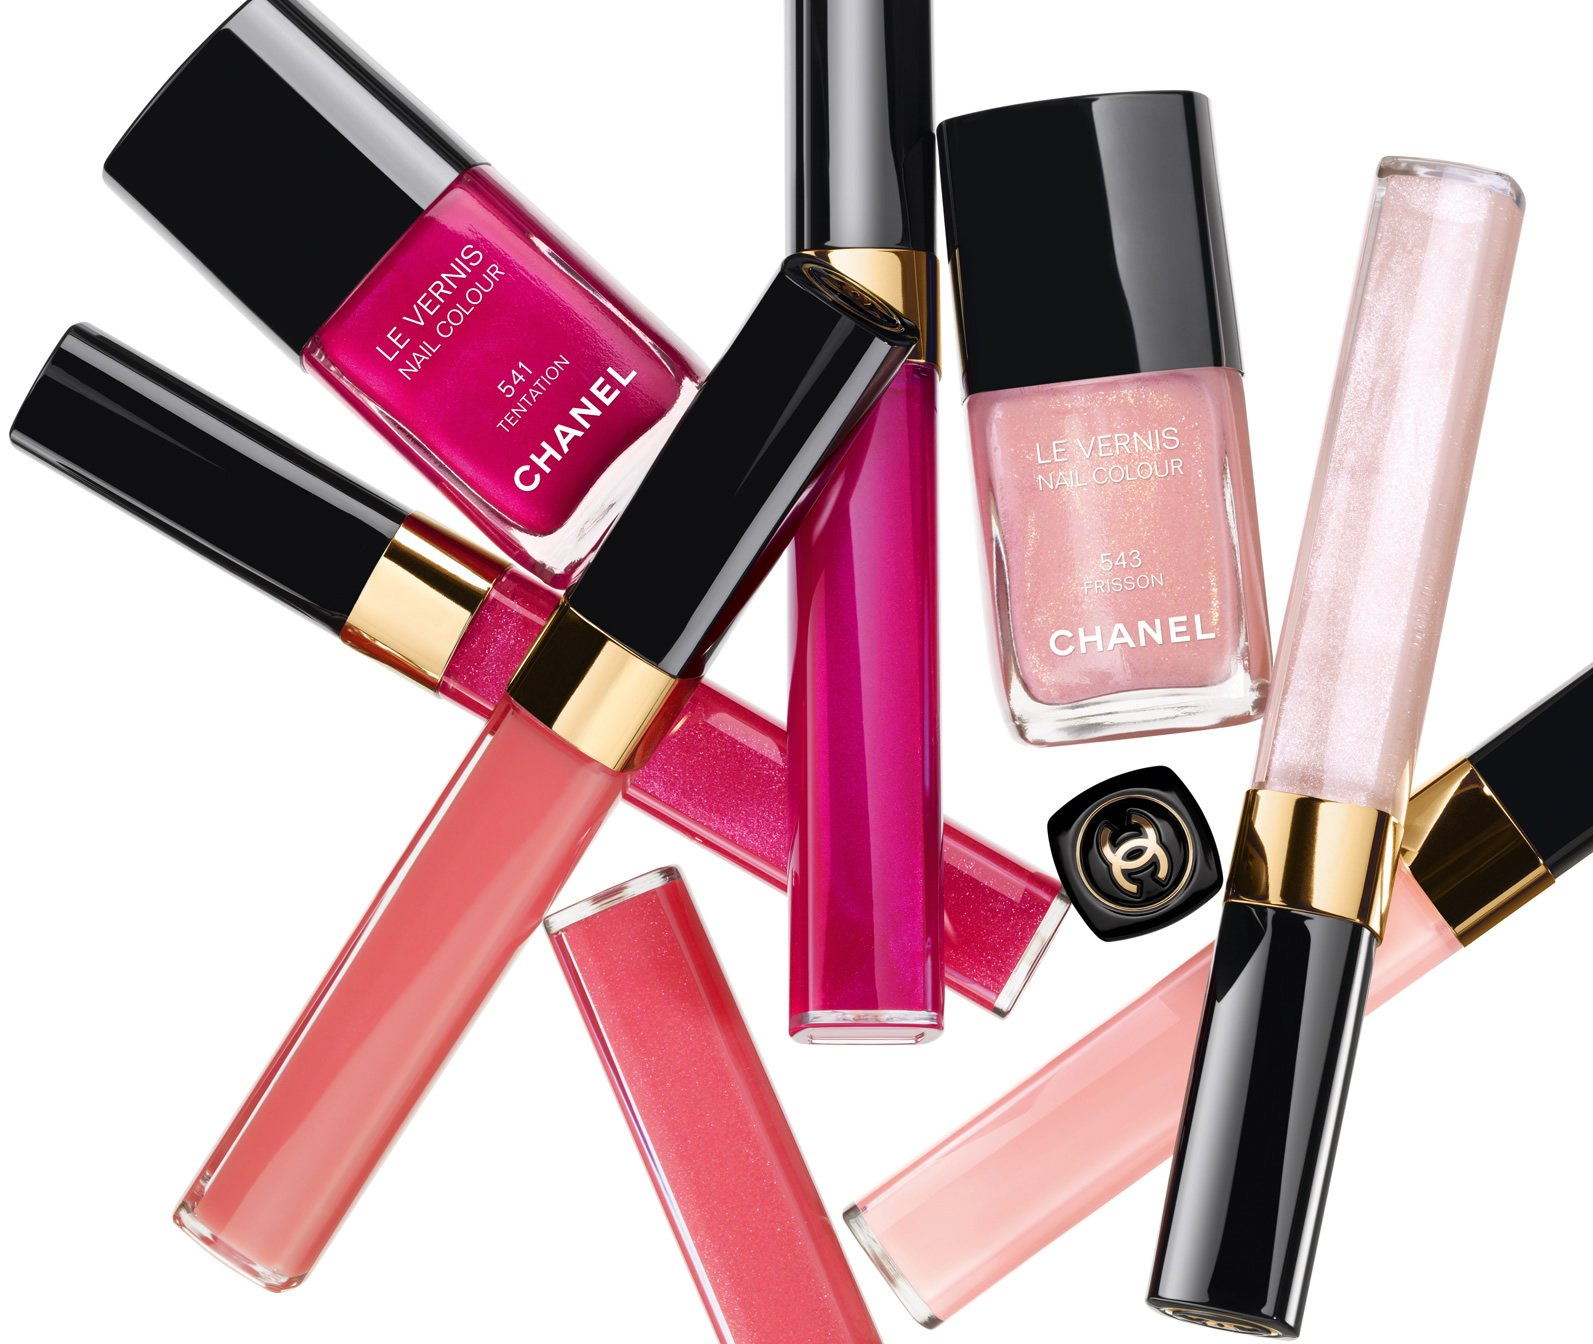 chanel-roses-ultimate-de-chanel-makeup-collection-spring-2012